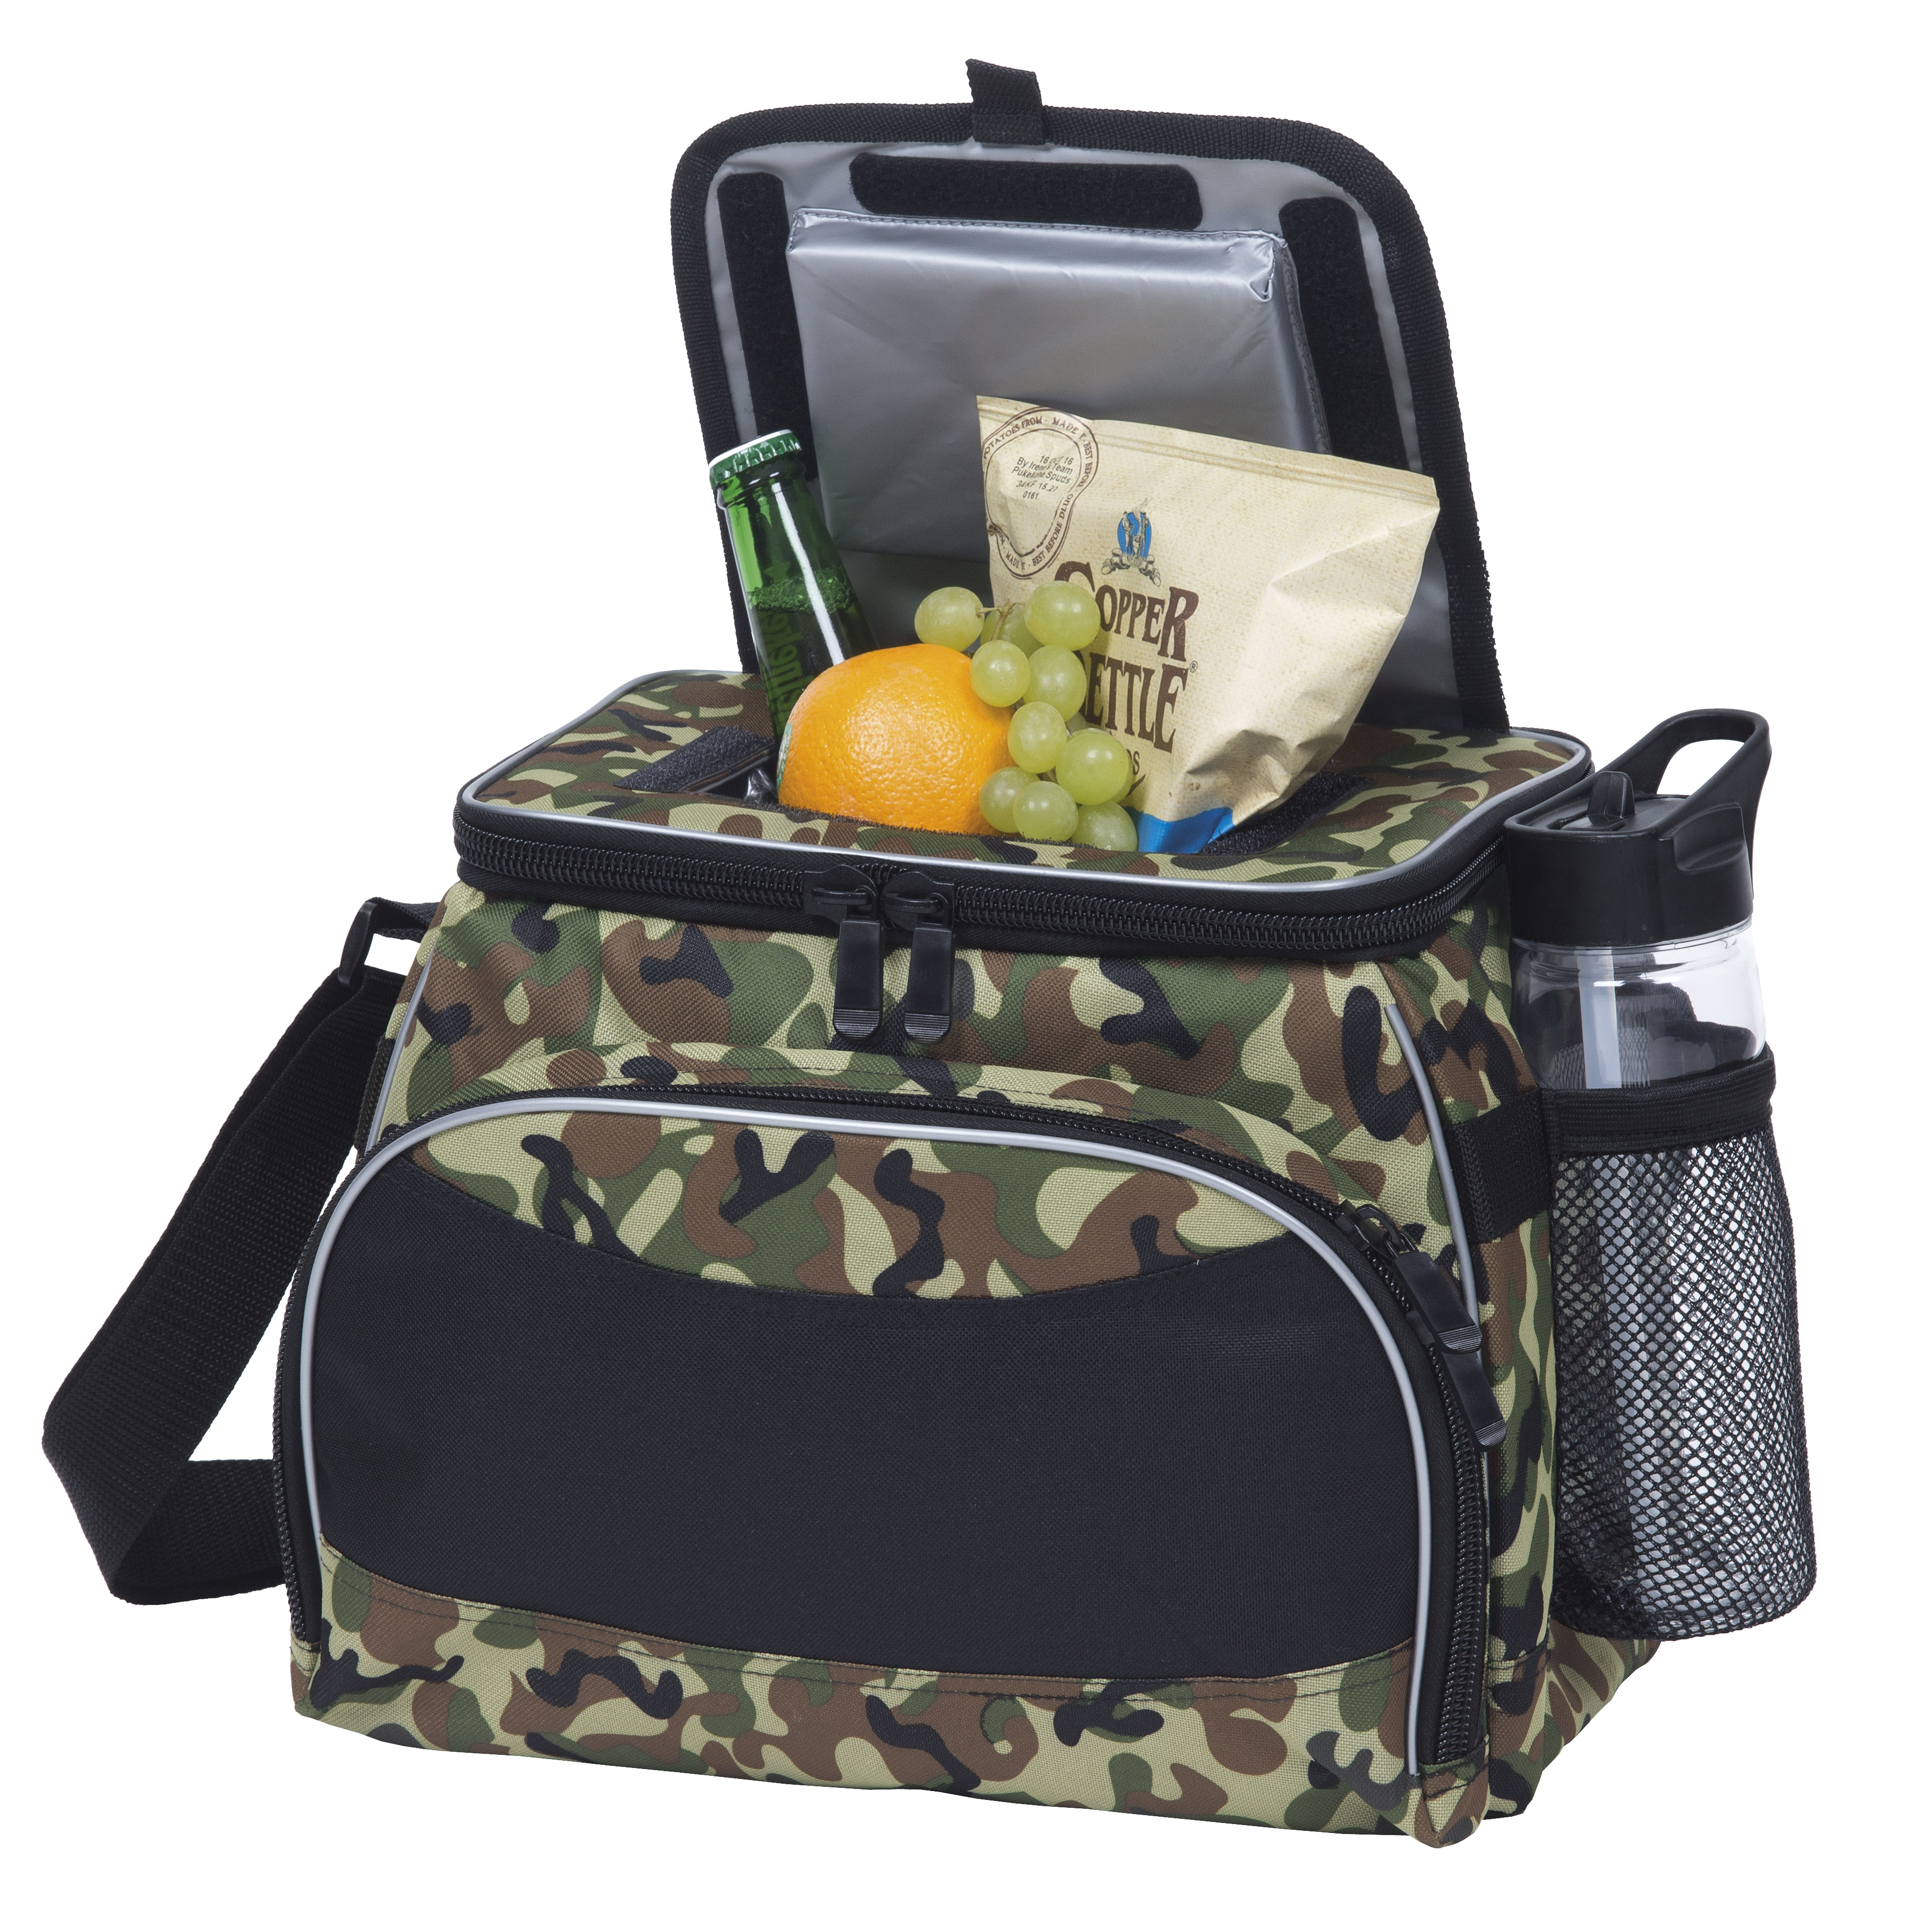 Promotional Product A WILD CAMO COOLER